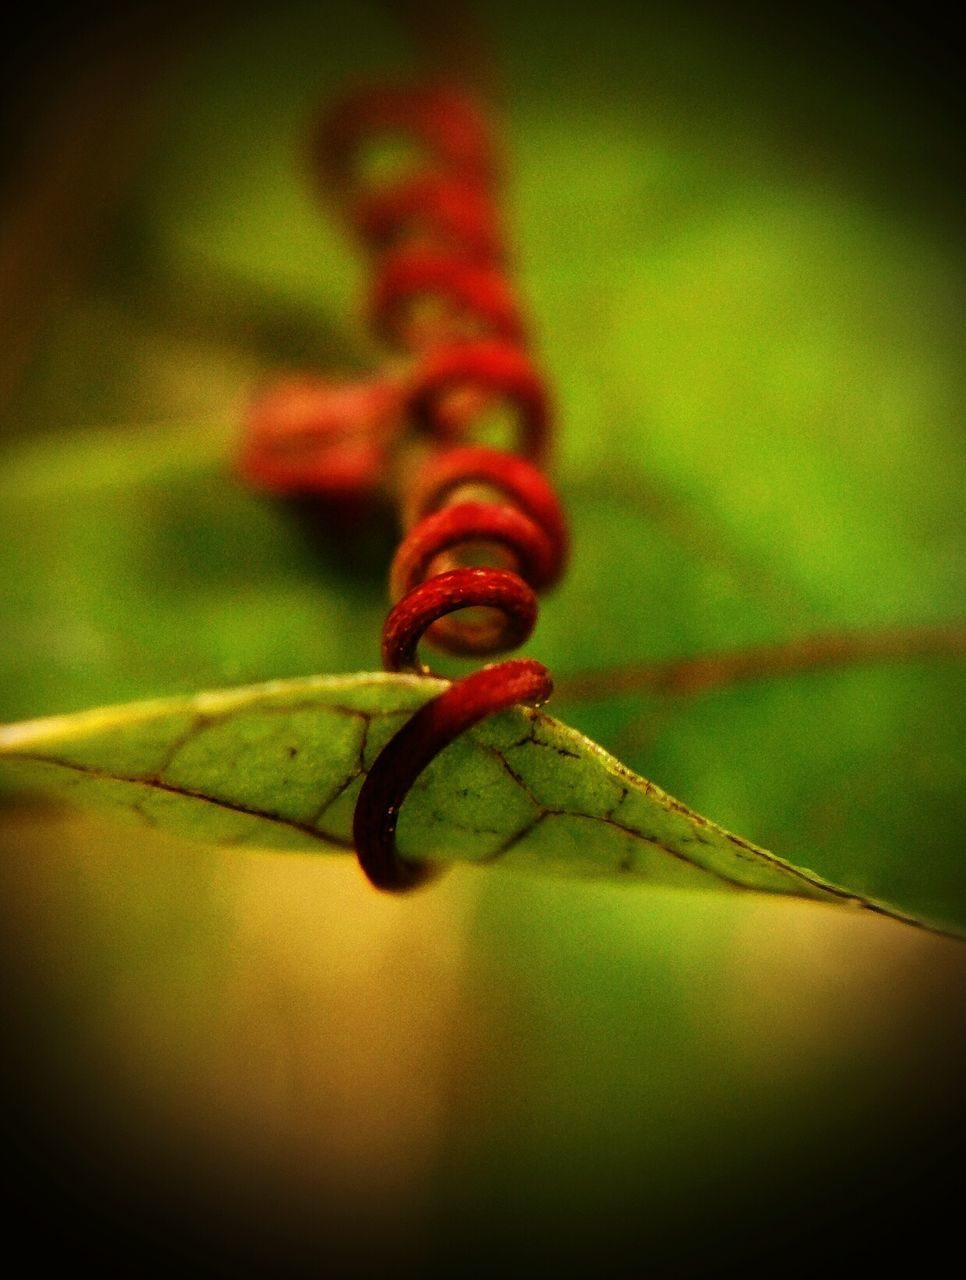 close-up, no people, insect, nature, animal themes, selective focus, one animal, green color, animals in the wild, outdoors, day, red, beauty in nature